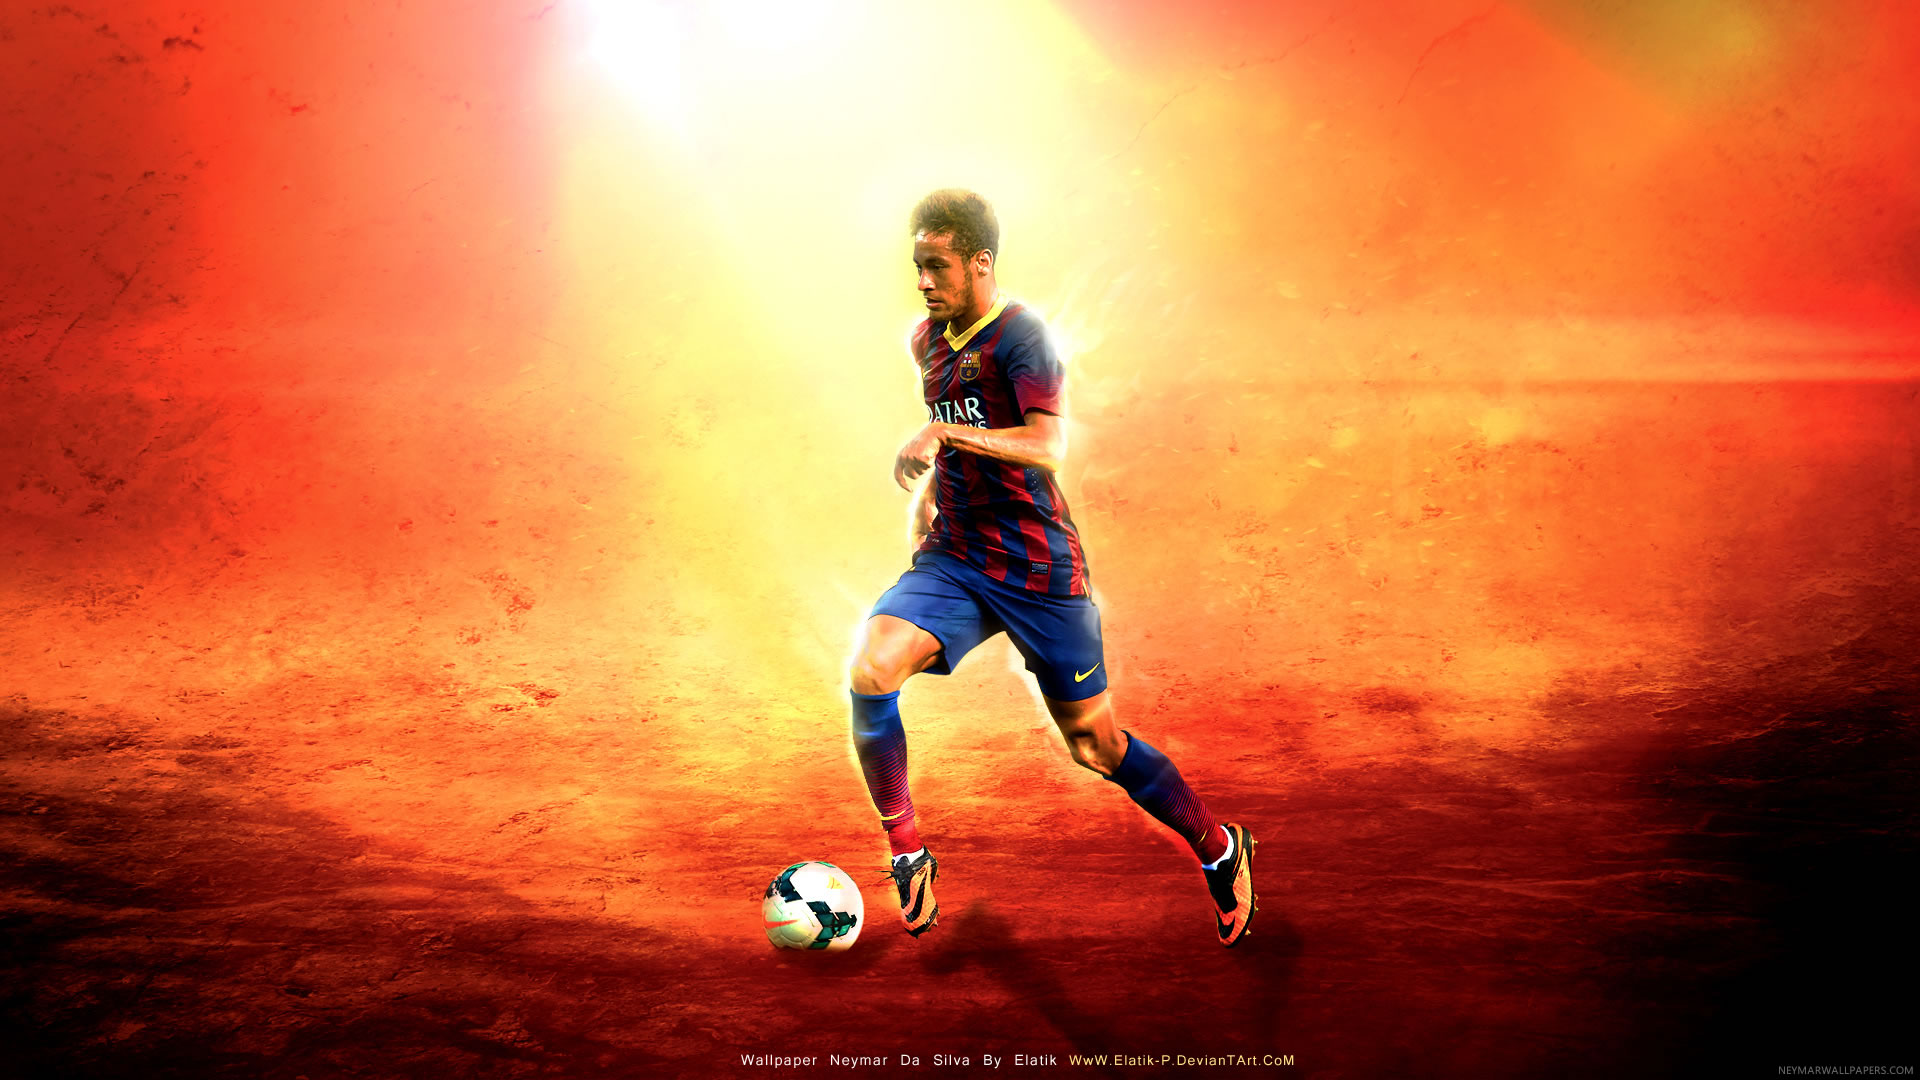 Neymar wallpaper by Elatik